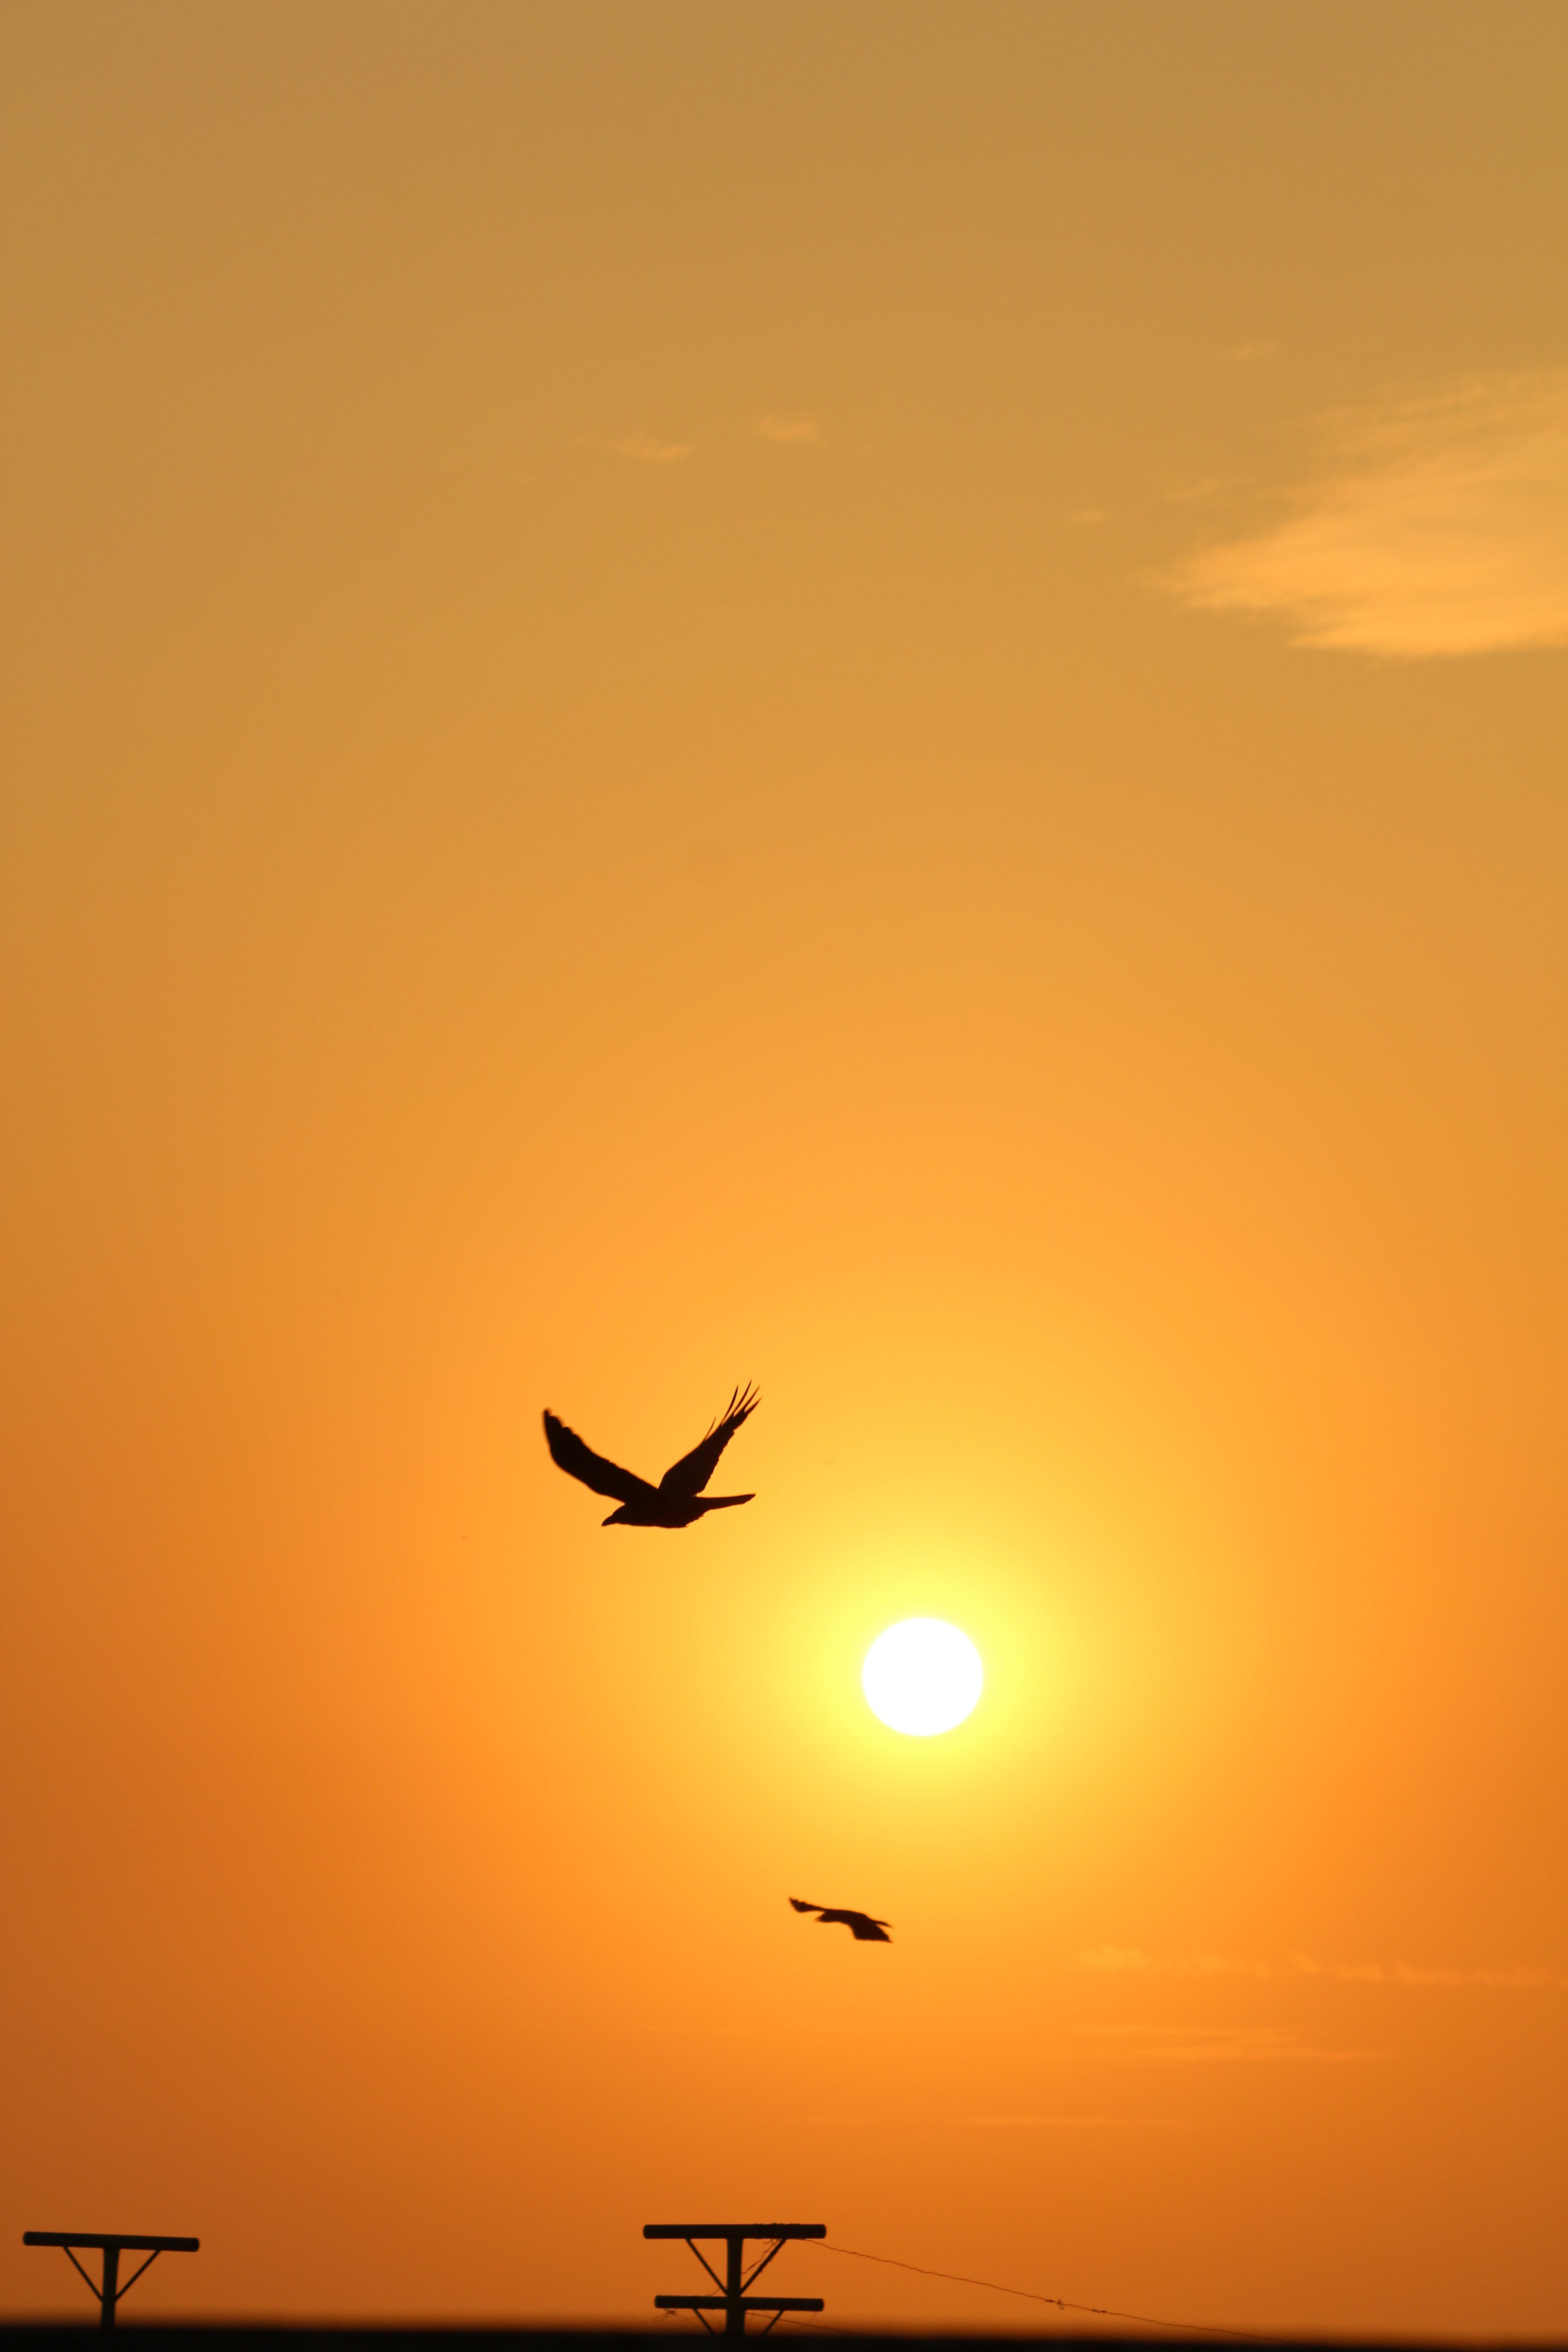 Free stock photo of bird, cool, golden sunset, nature photography